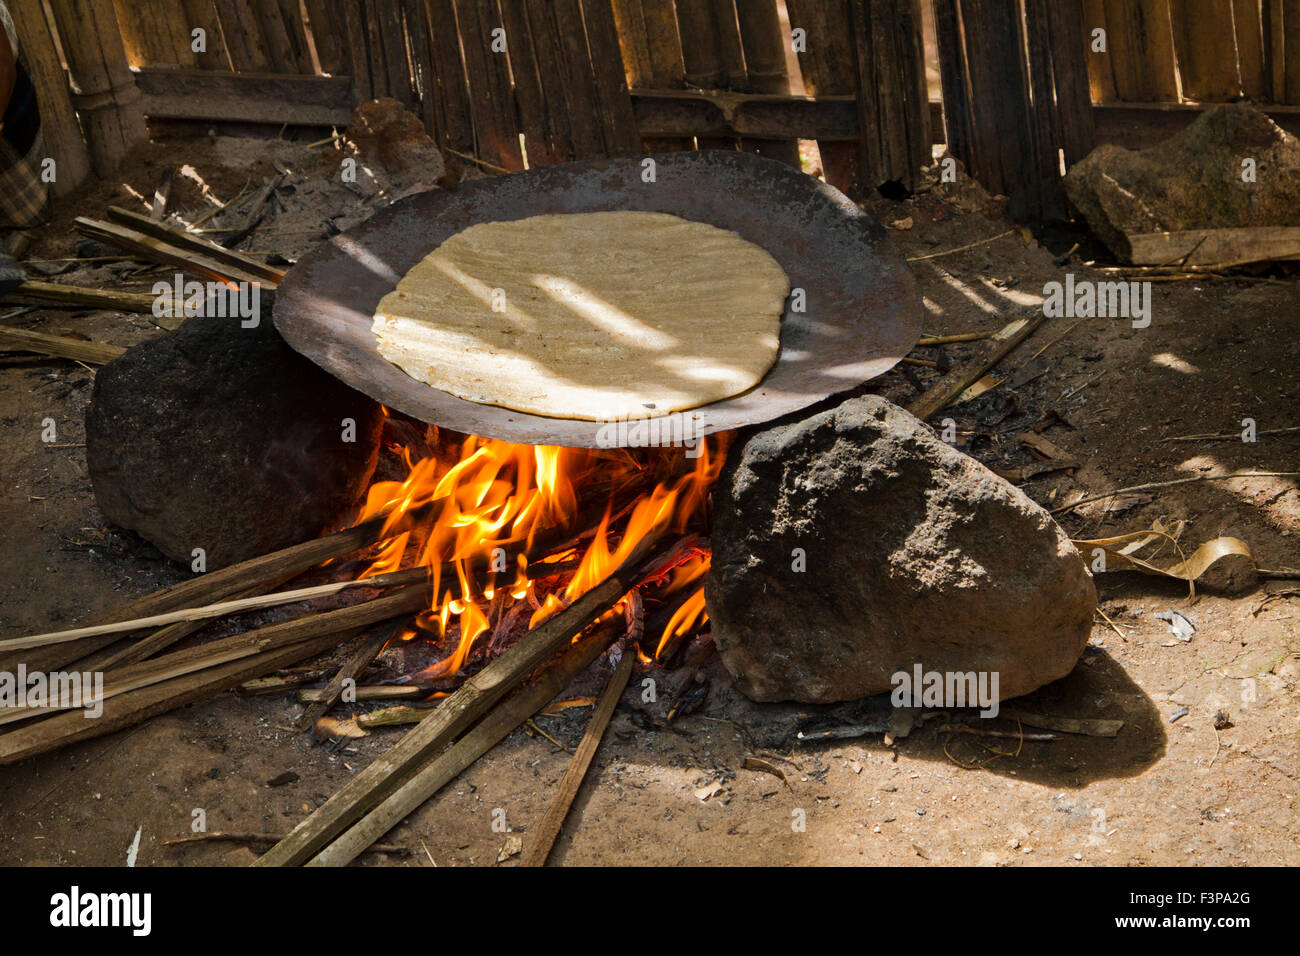 Africa, Ethiopia, Omo region, Chencha, Dorze village. Woman prepares bread from the shaving a leaf of the fruitless Stock Photo